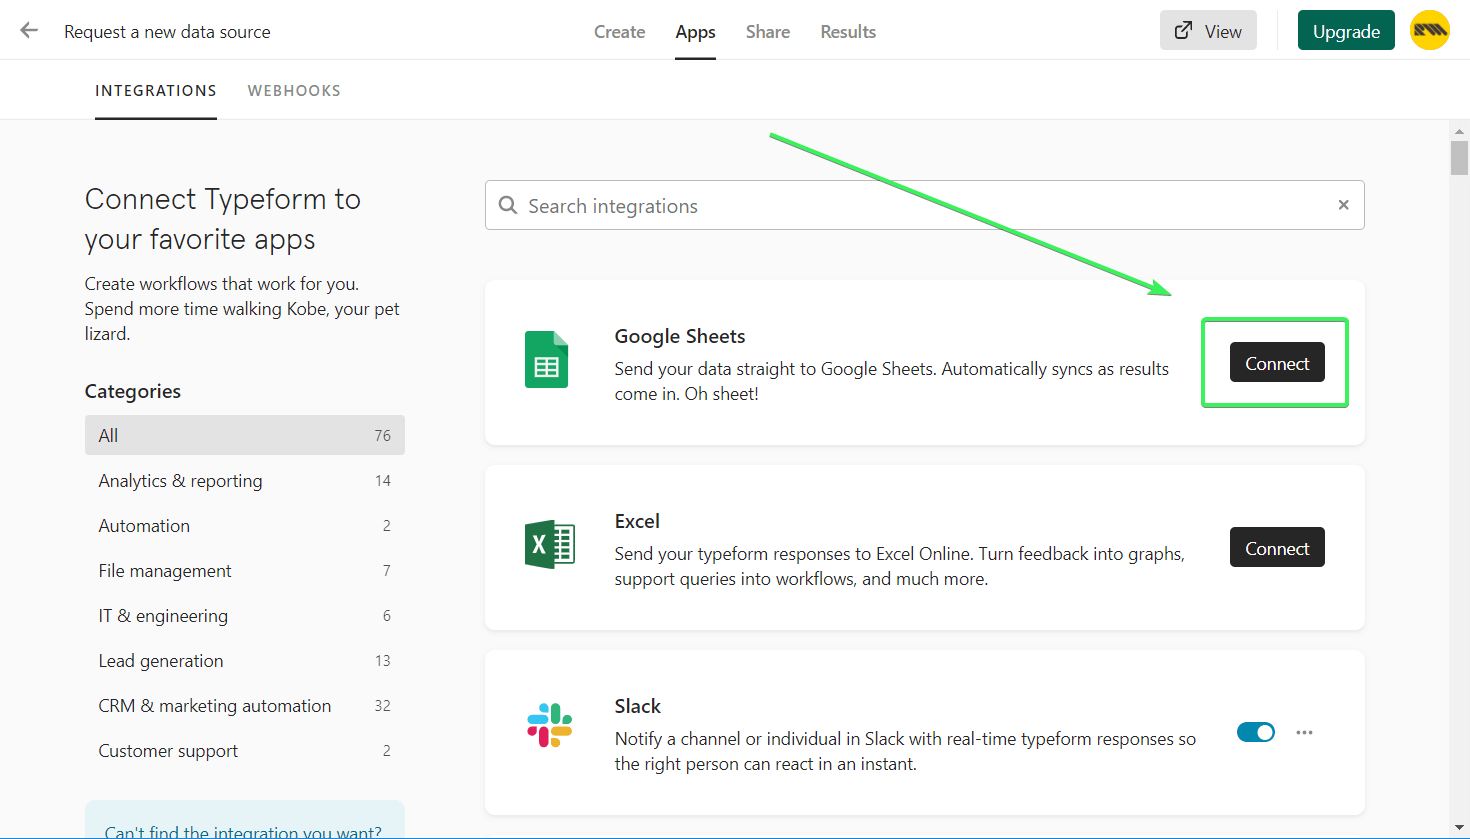 """click the """"Connect"""" button associated with Google Sheets"""